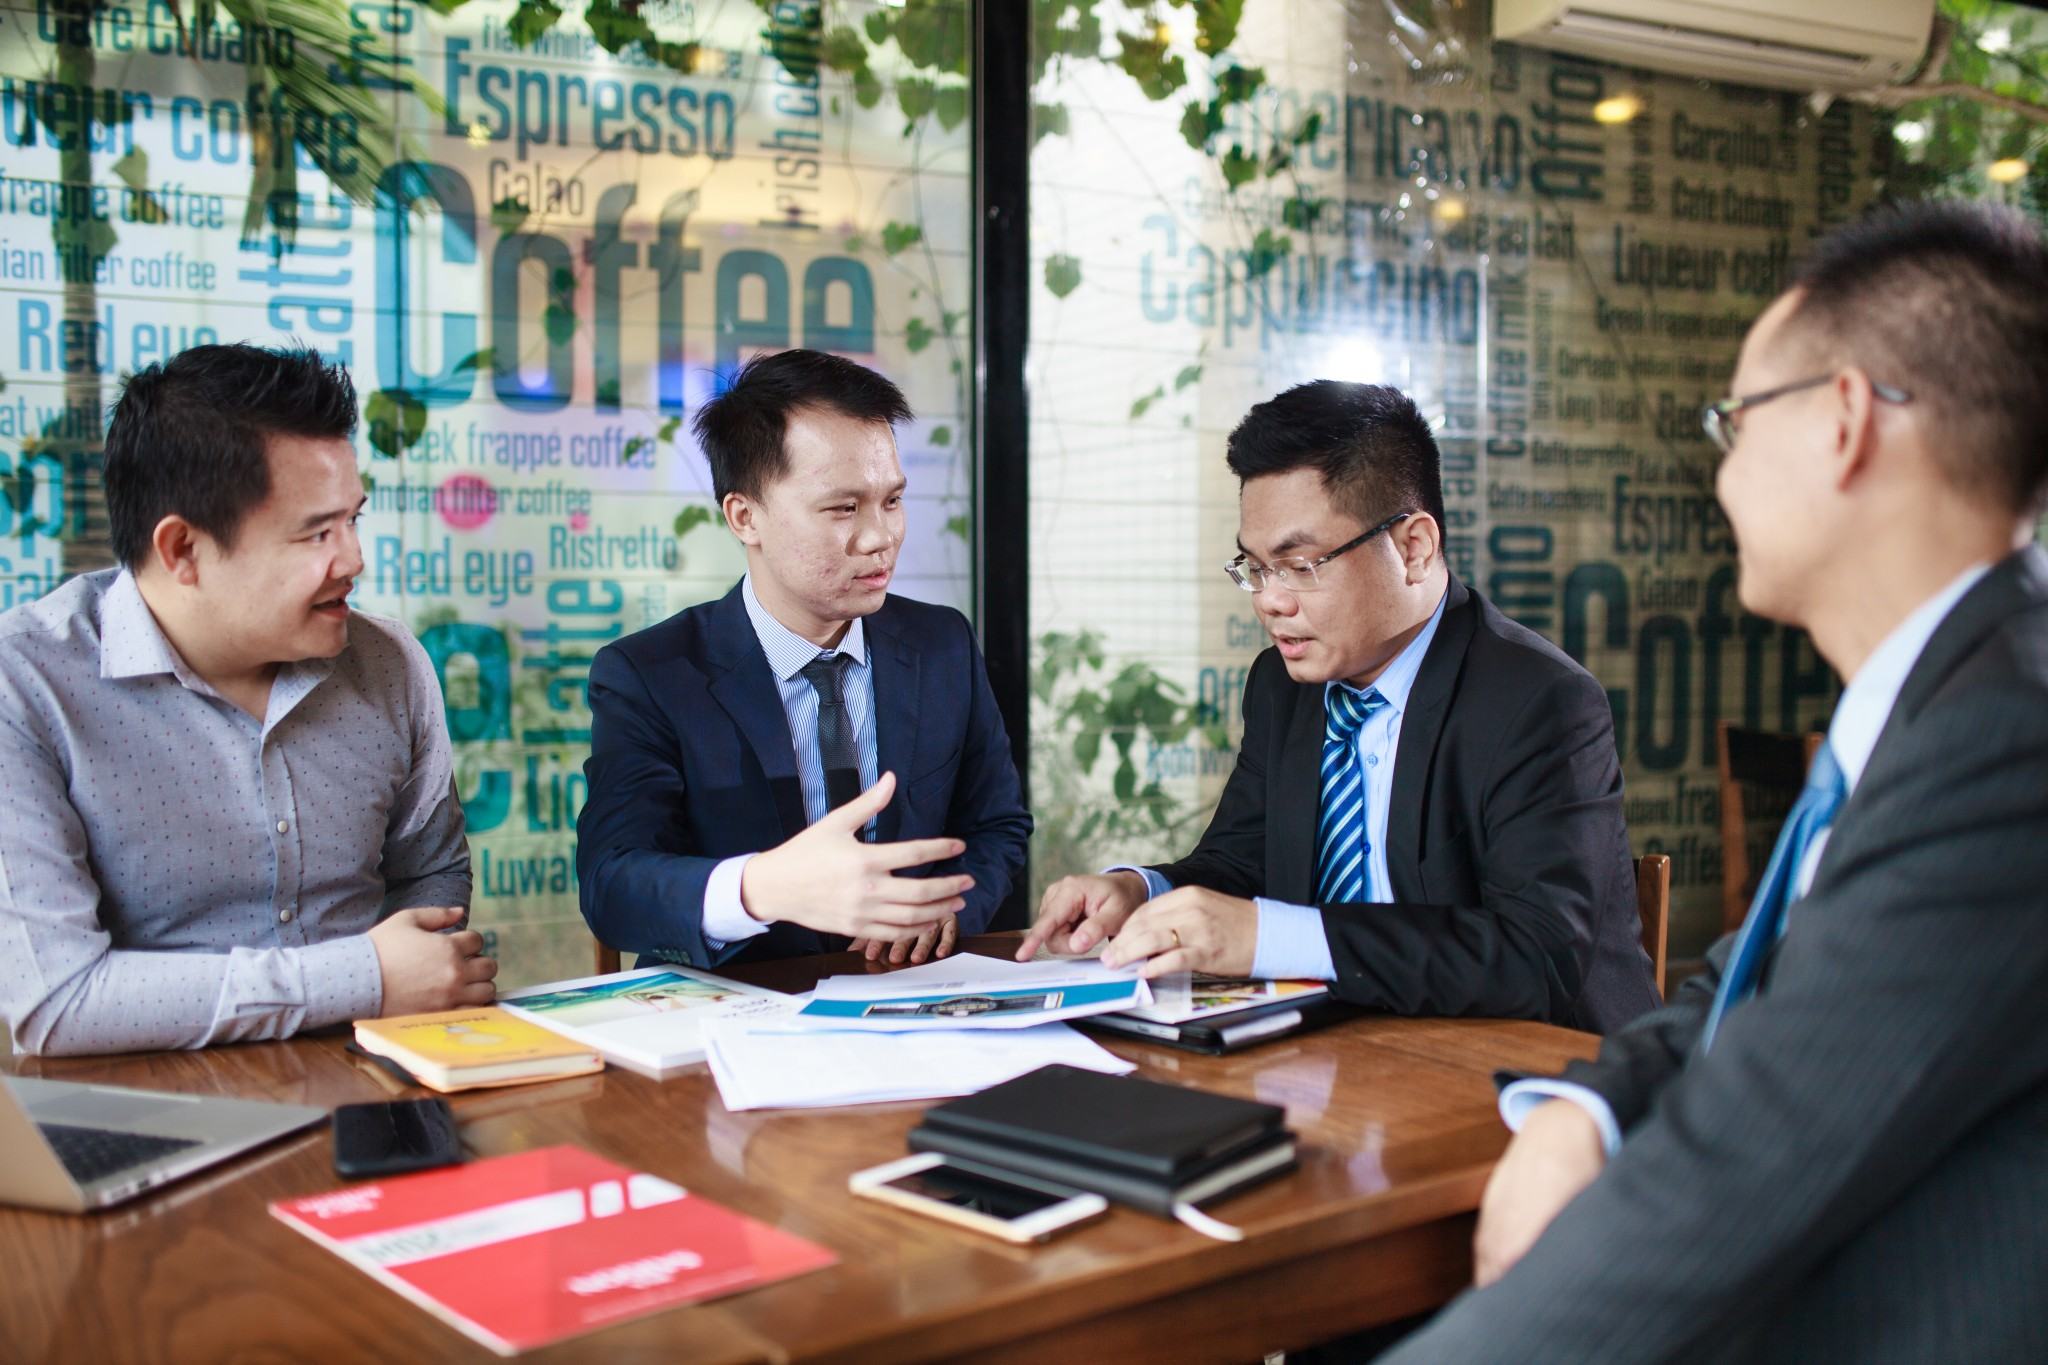 Consultation services on Labor Law